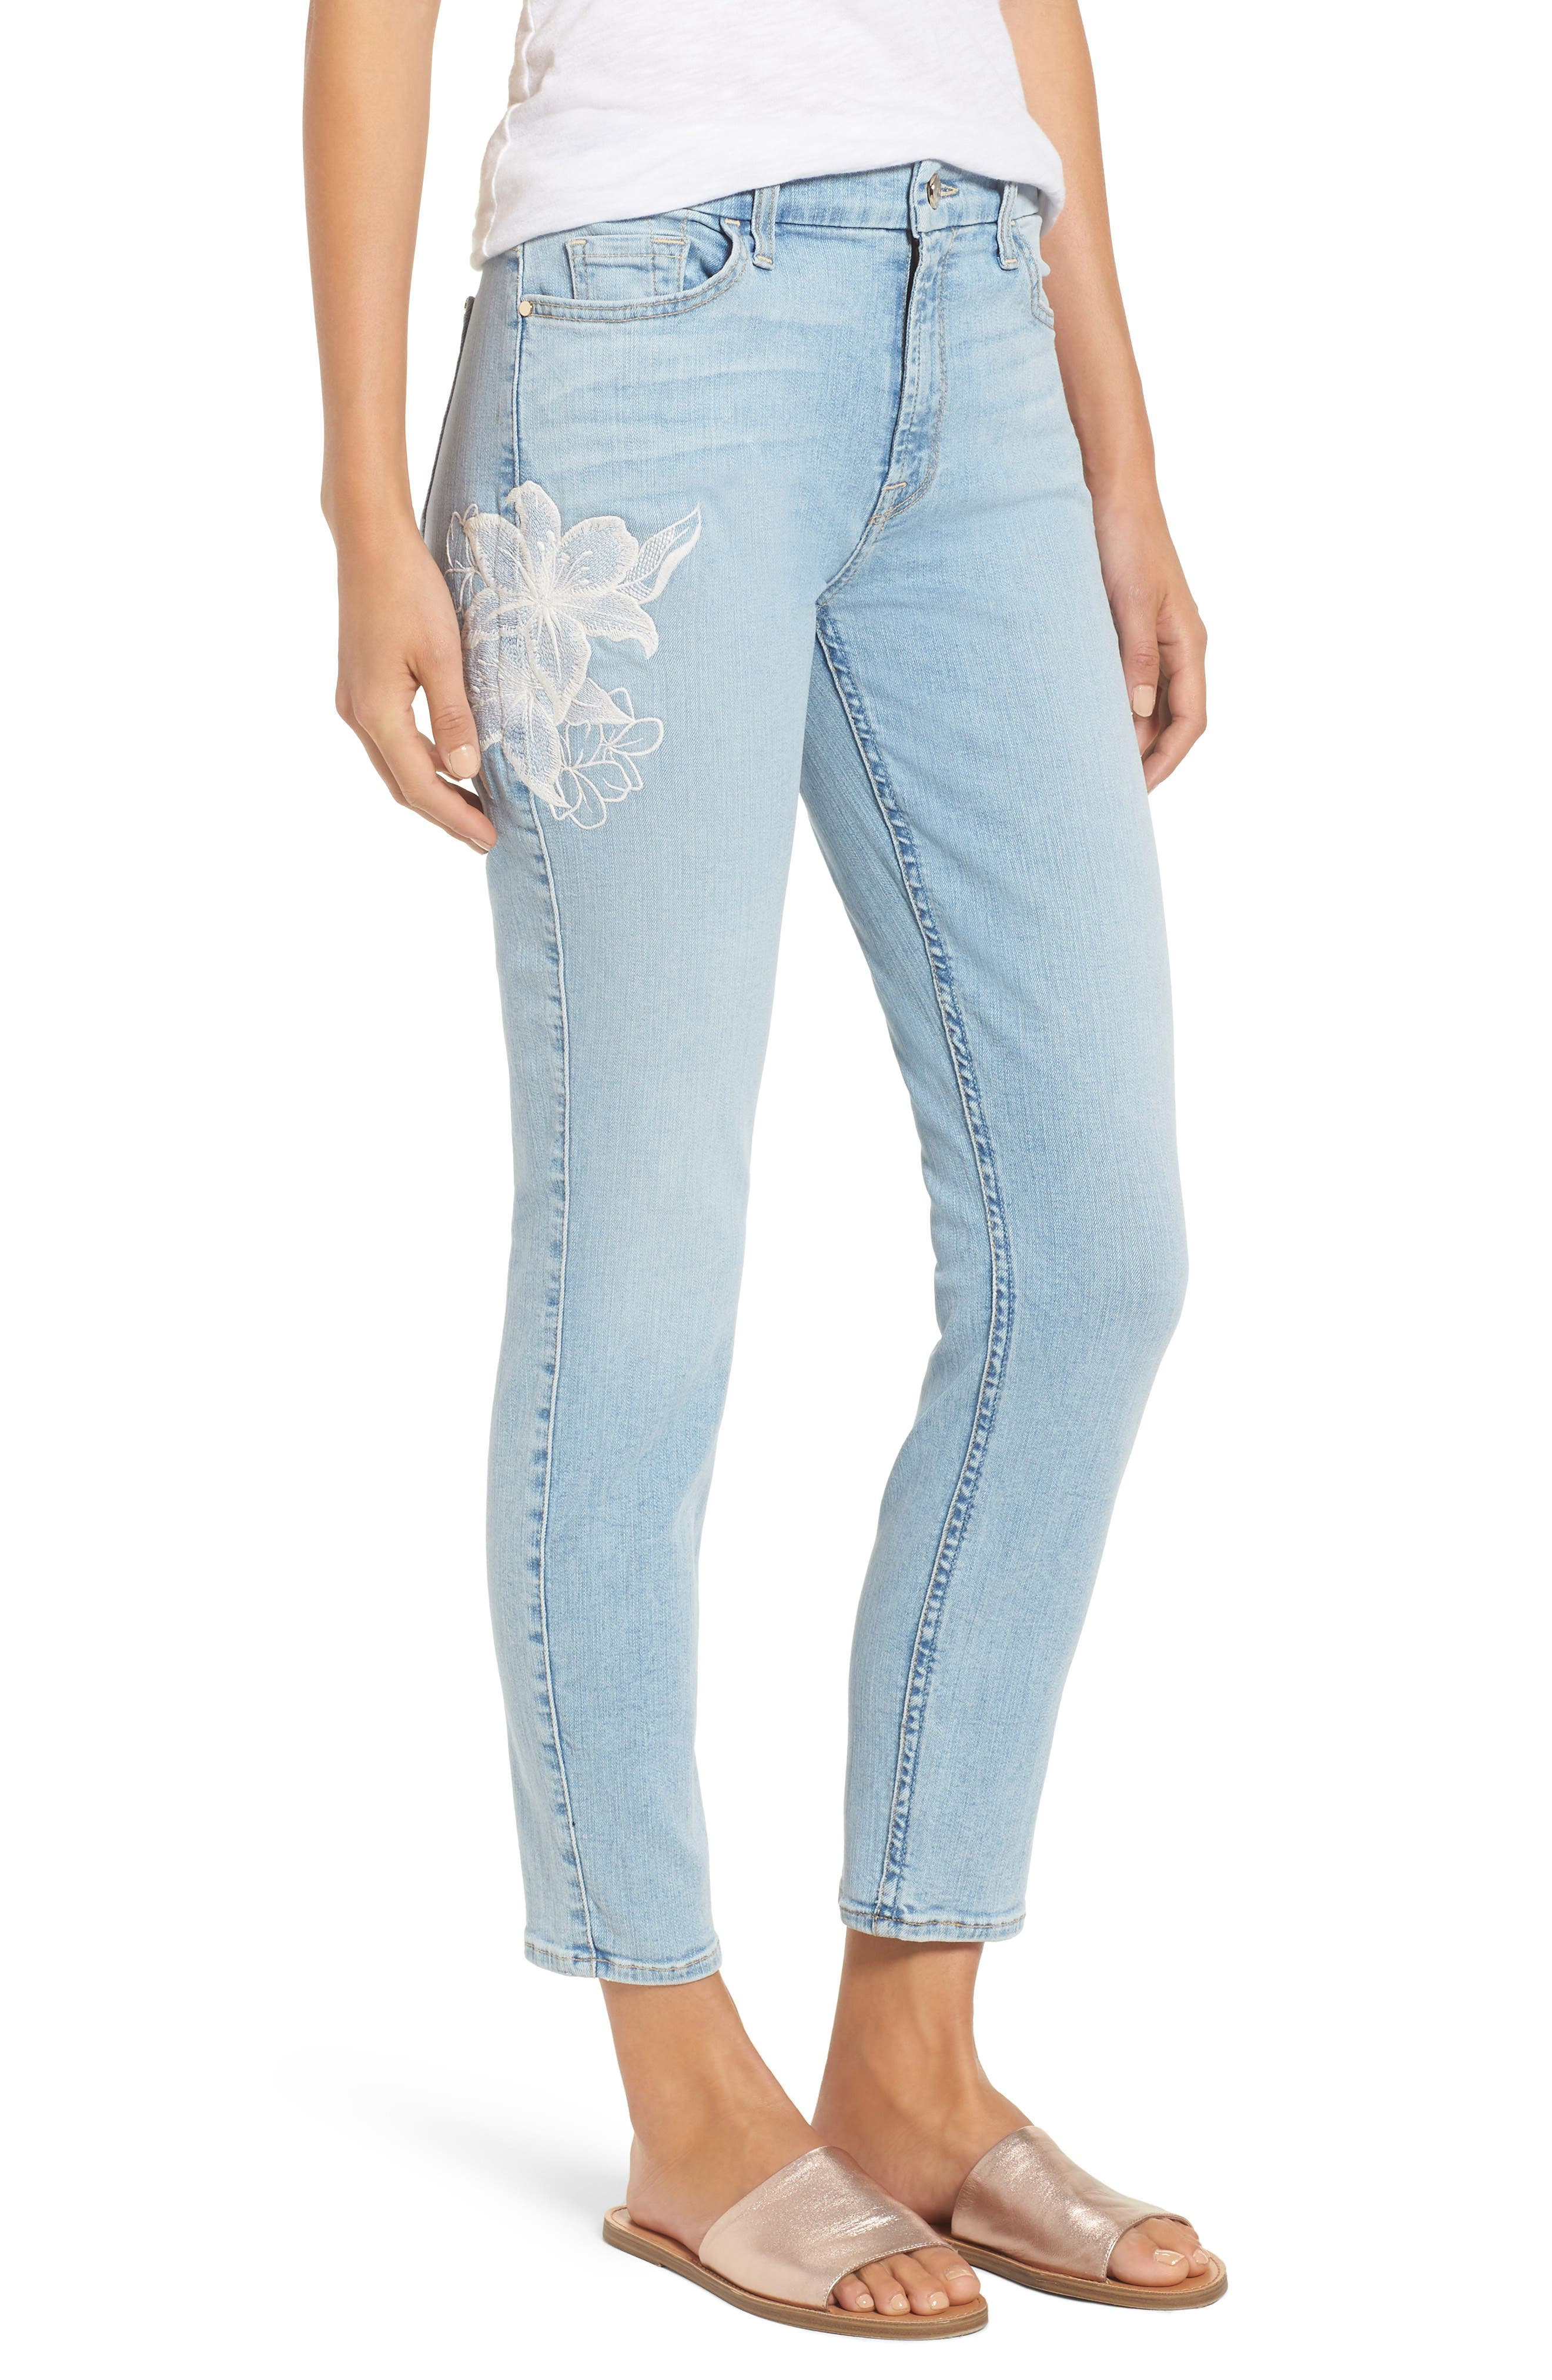 Jen 7 Embroidered Stretch Sklnny Ankle Jeans,                         Main,                         color, Riche Touch Playa Vista